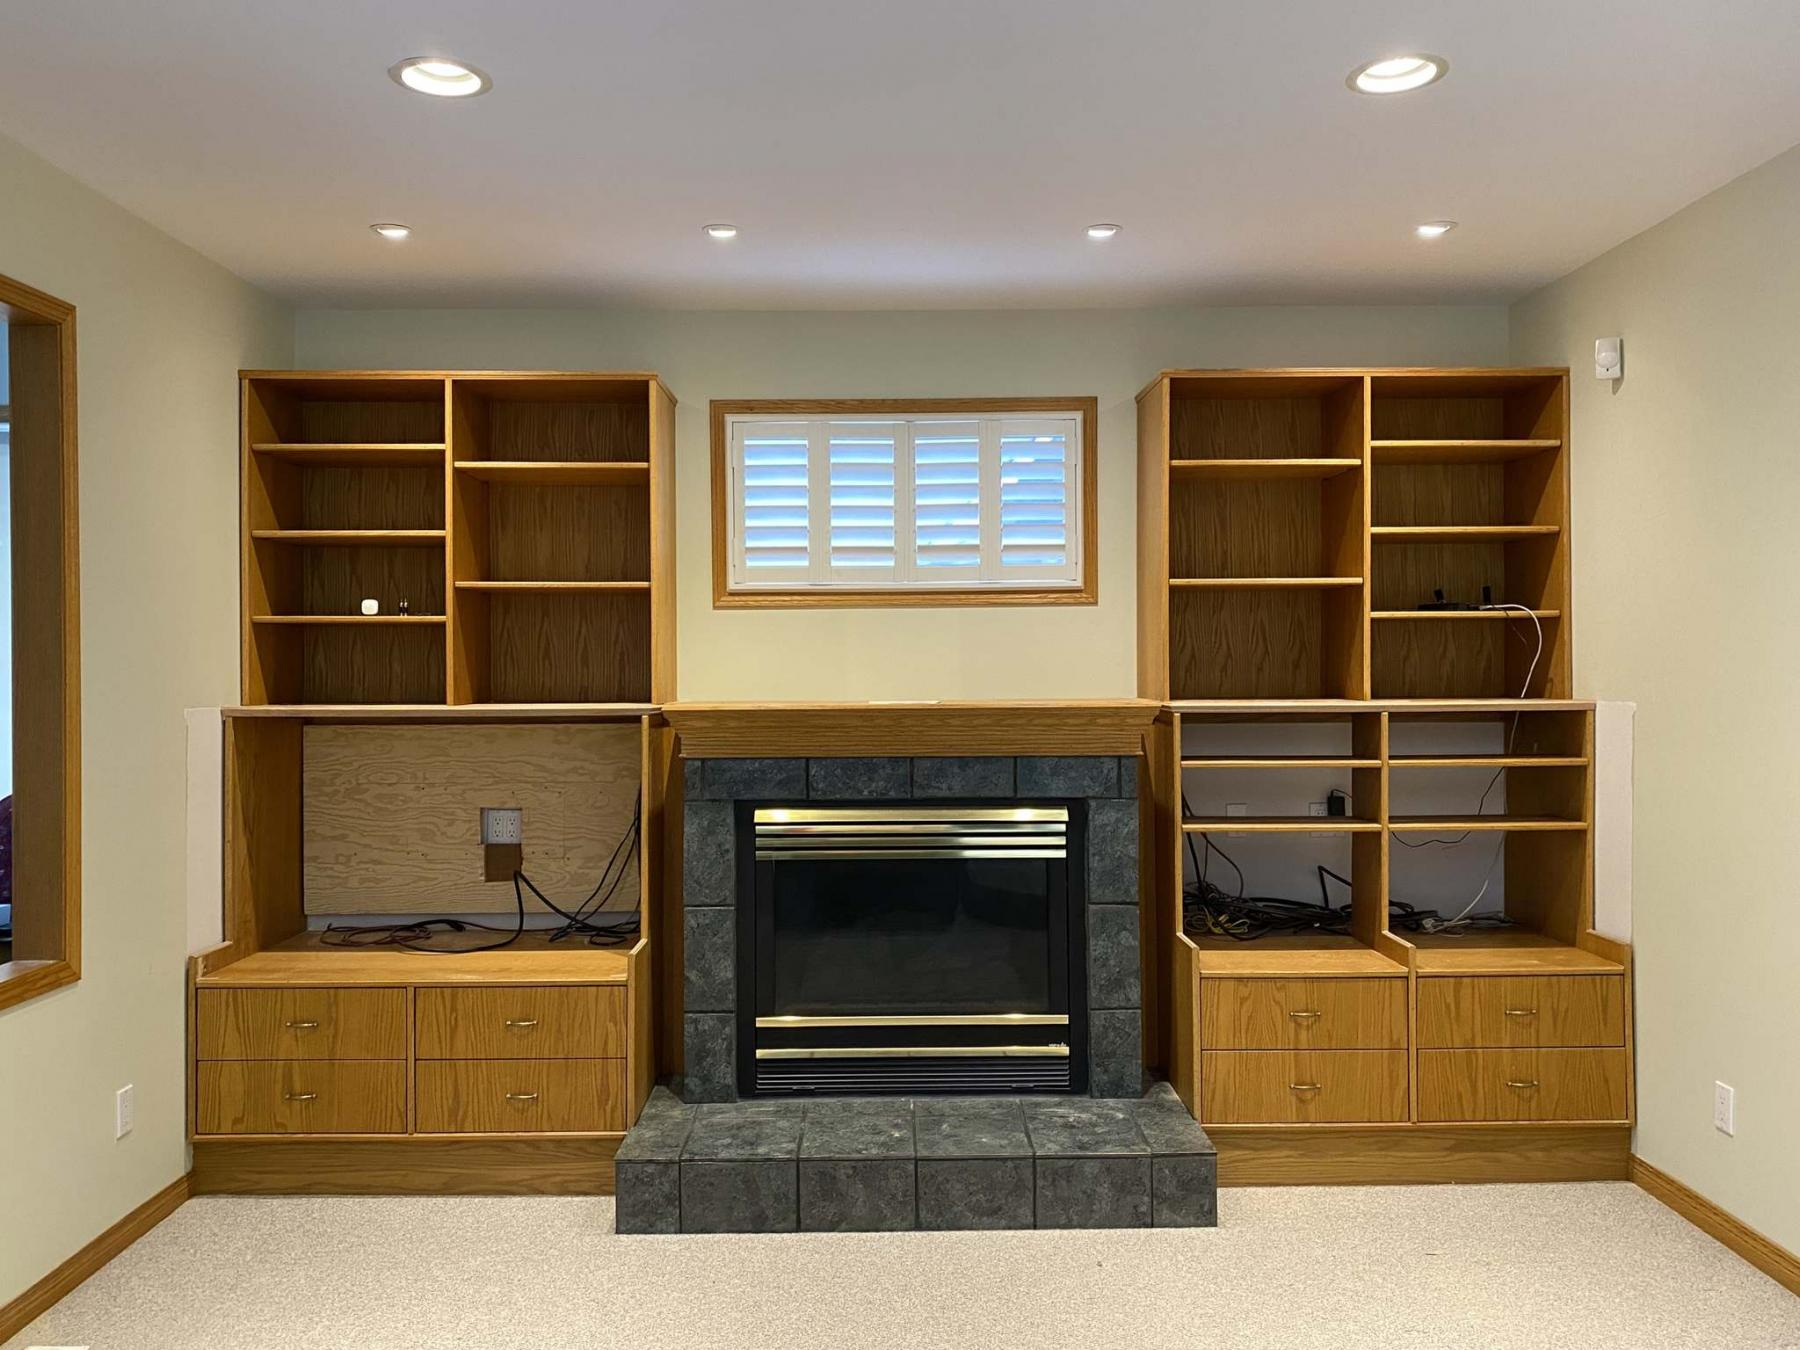 <p>Photos by Marc LaBossiere / Winnipeg Free Press</p><p>Once the middle cabinets on either side of the fireplace were cut back (above), the TV could be placed on the left. After existing oak edge trim was removed (below), the cut lines were marked on the cabinet and the shelves were completely removed to allow a clean cutting process.</p>